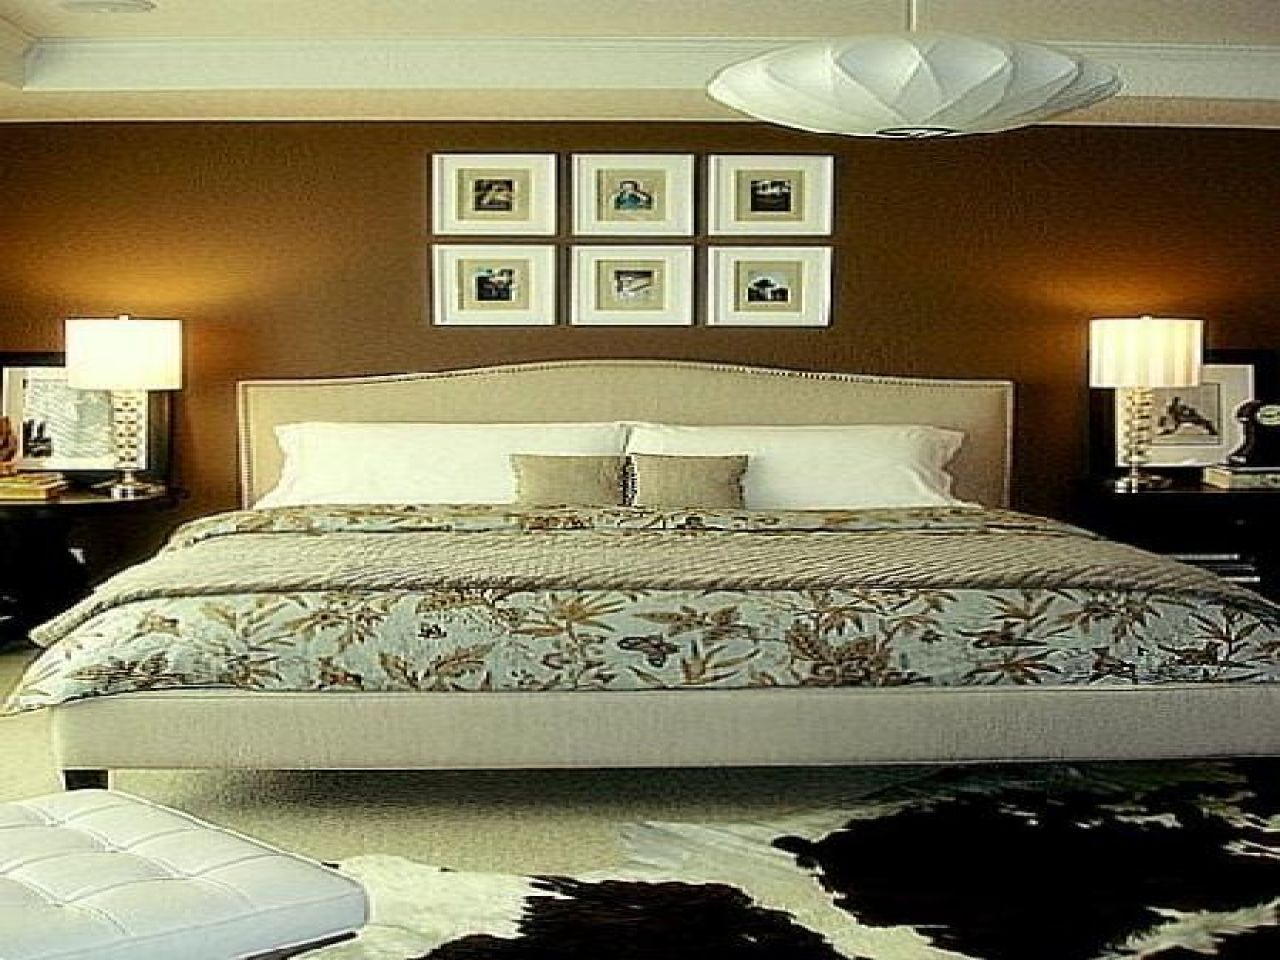 Master bedroom bedroom decor ideas  hgtv bedroom decorating ideas bedrooms dream house design and  Home